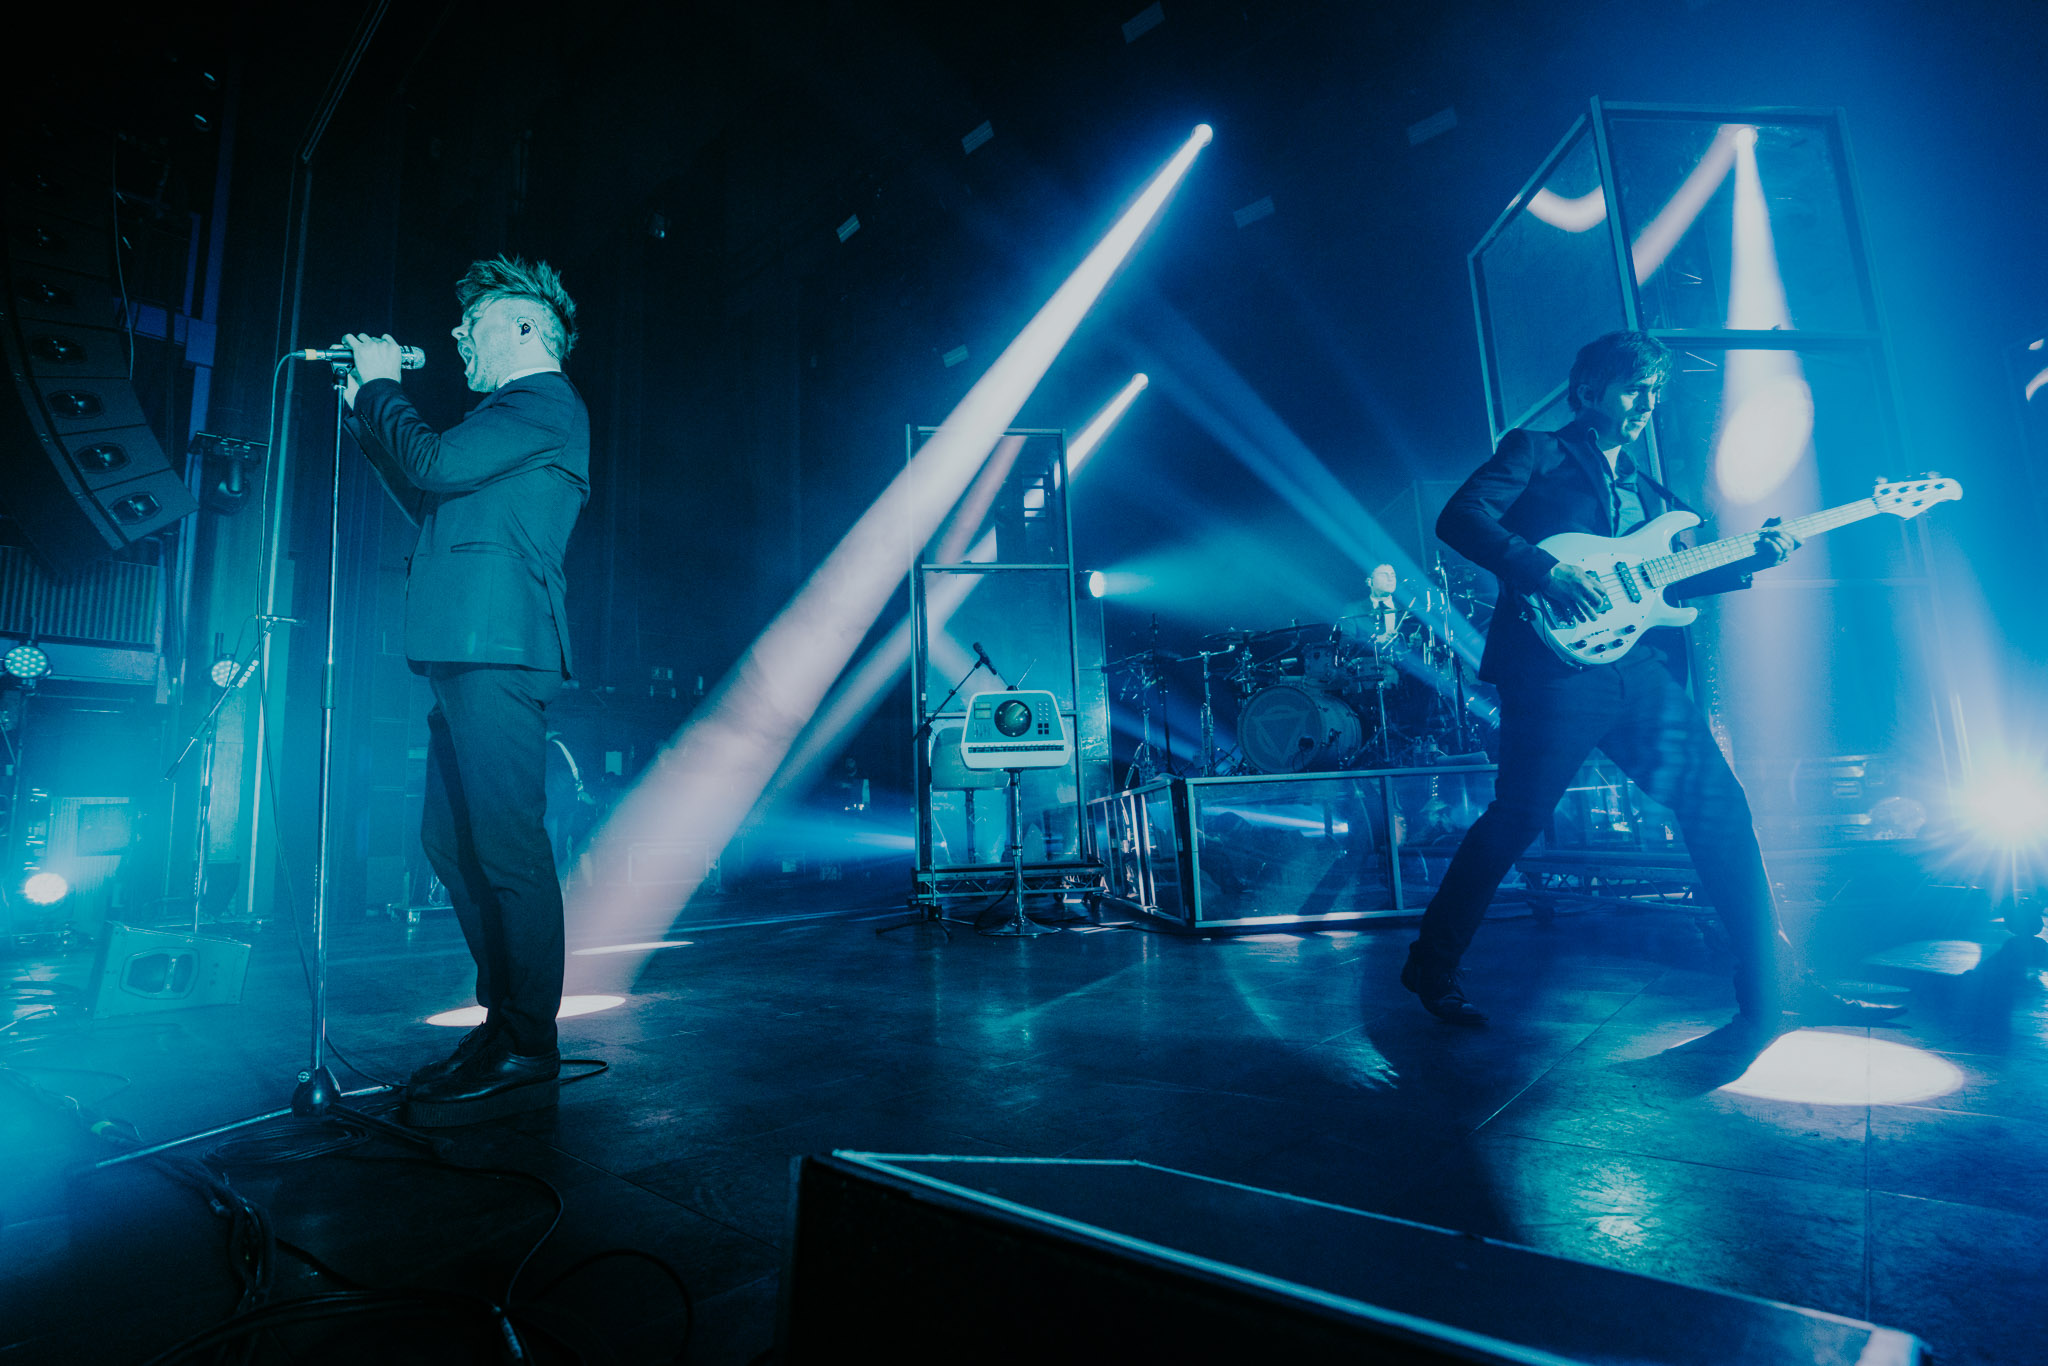 EnterShikari_17-04-2019_@arnecrdnls_119